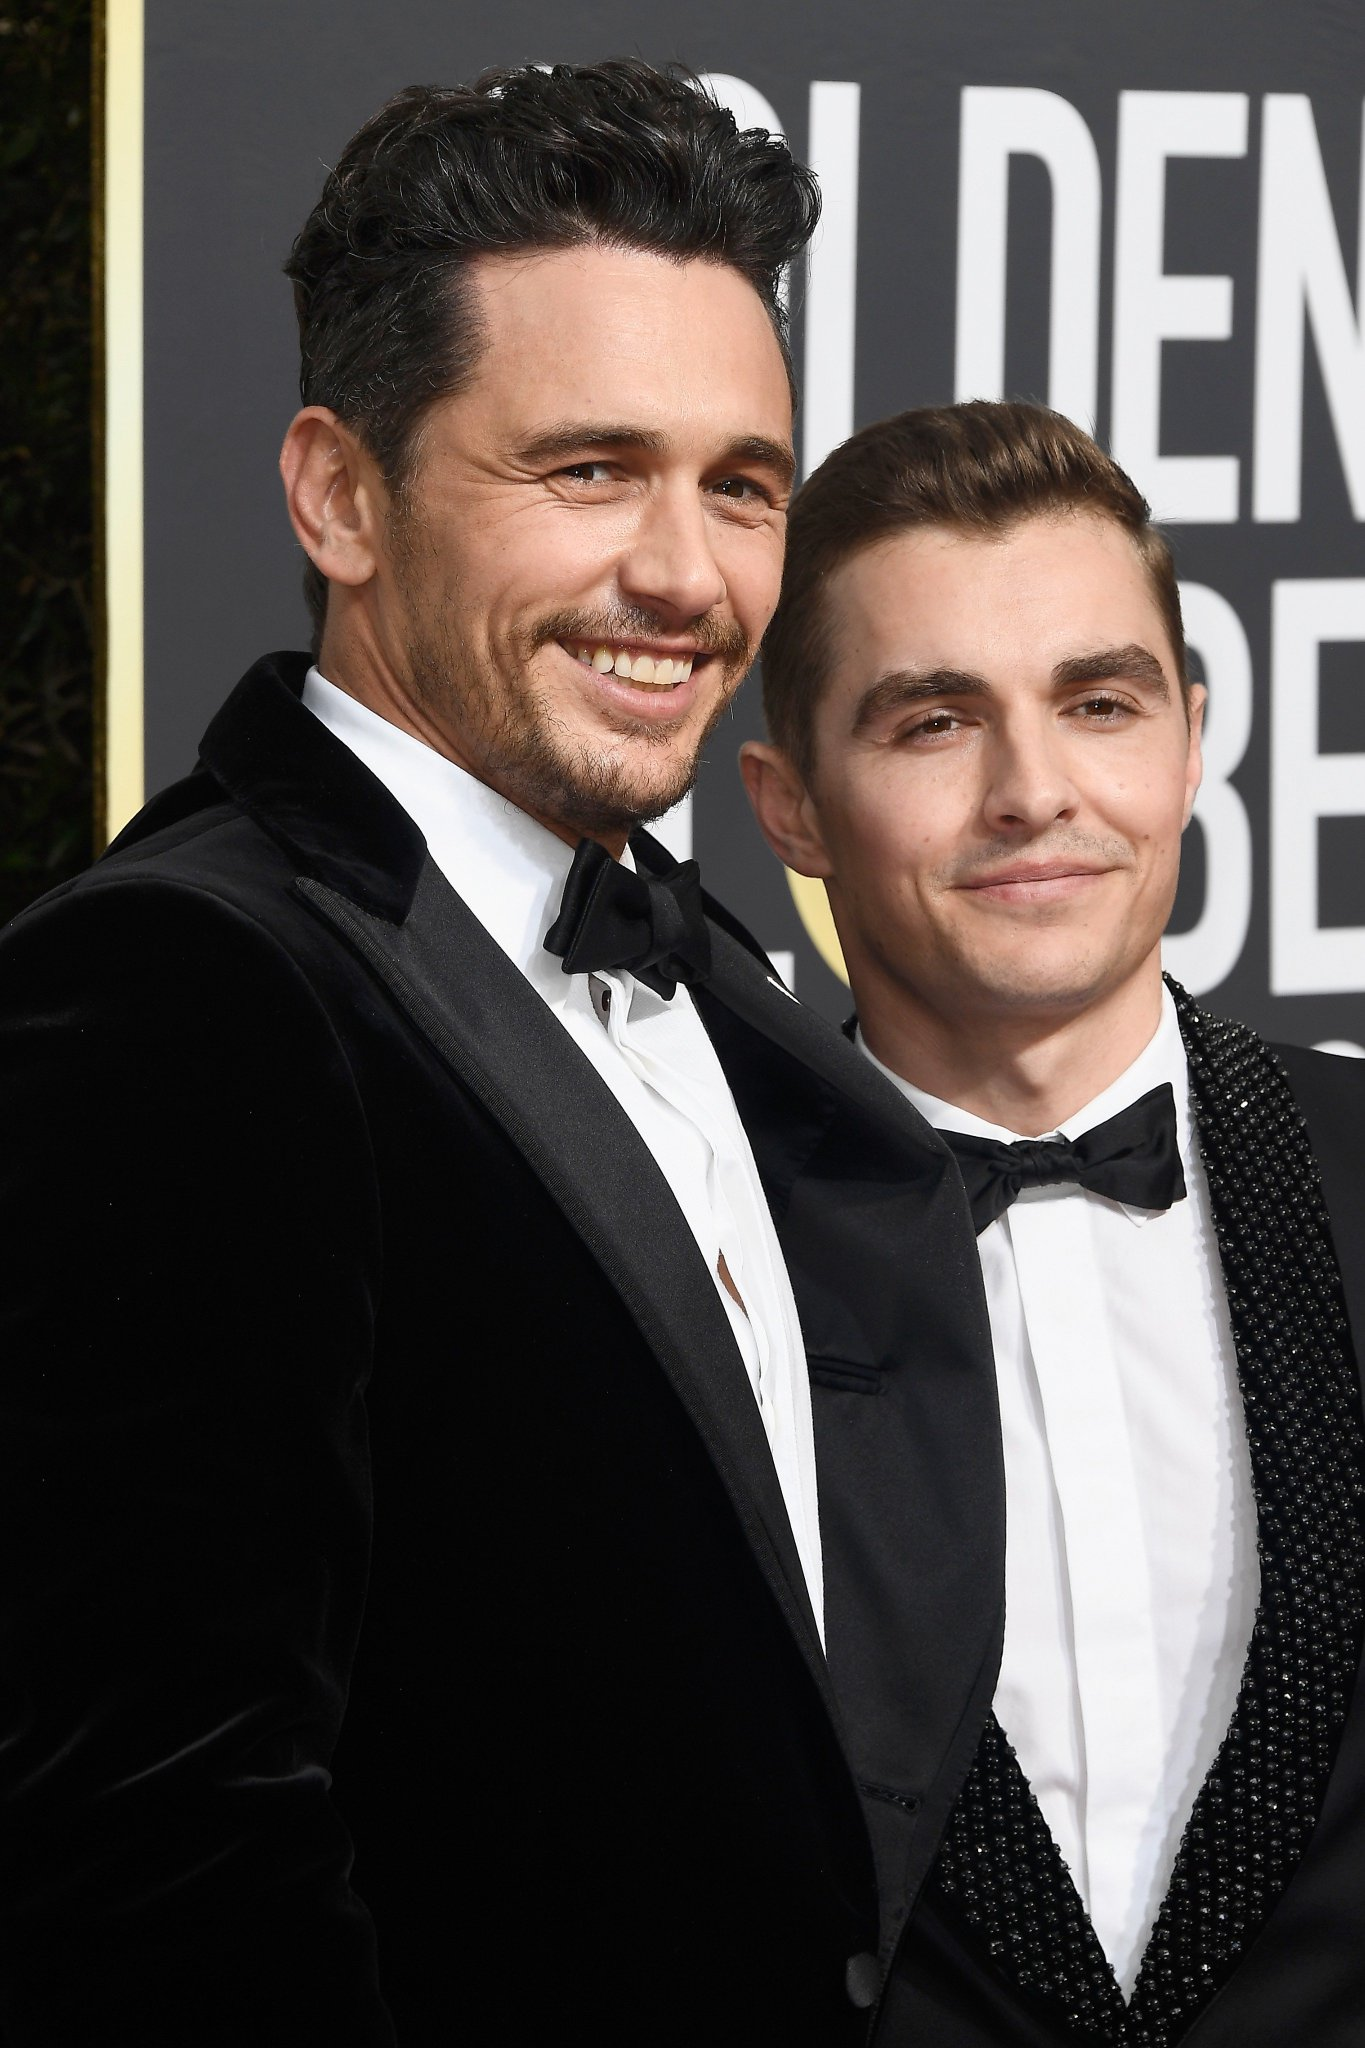 James Franco thanked his mom for giving birth to Dave Franco and honestly same? #GoldenGlobes https://t.co/zzjgtVoeAW